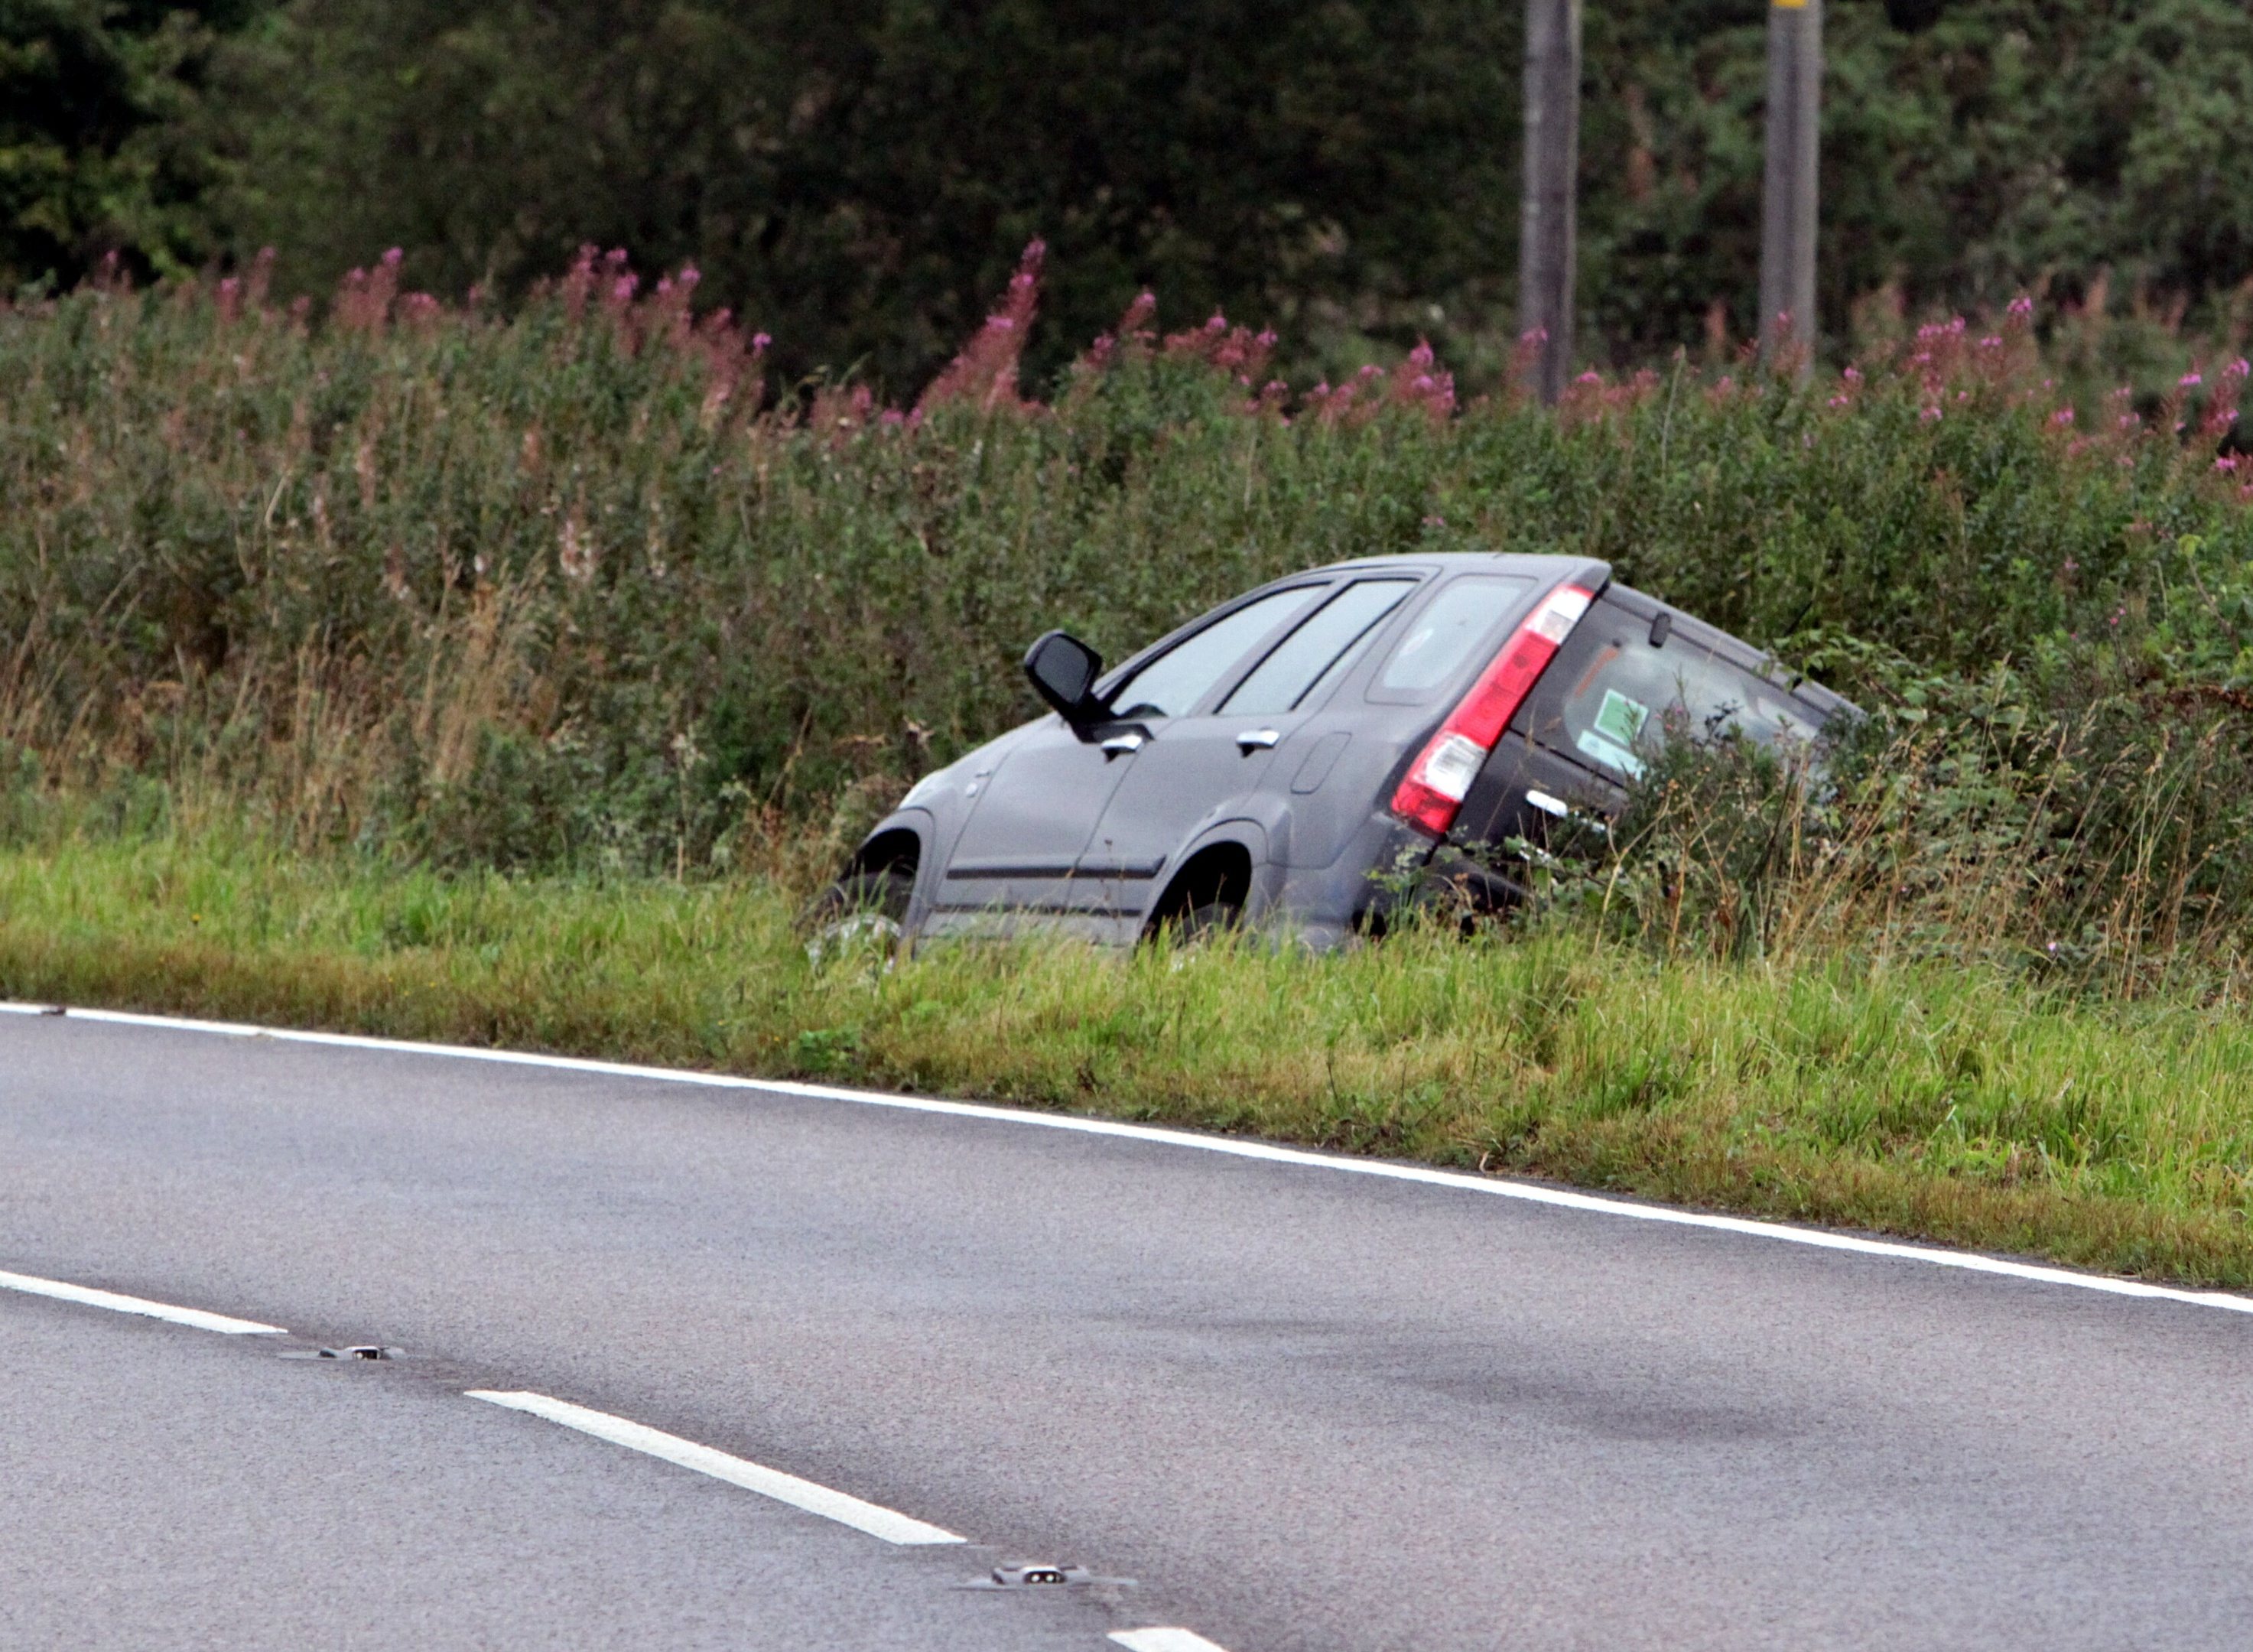 The car at the side of the road.